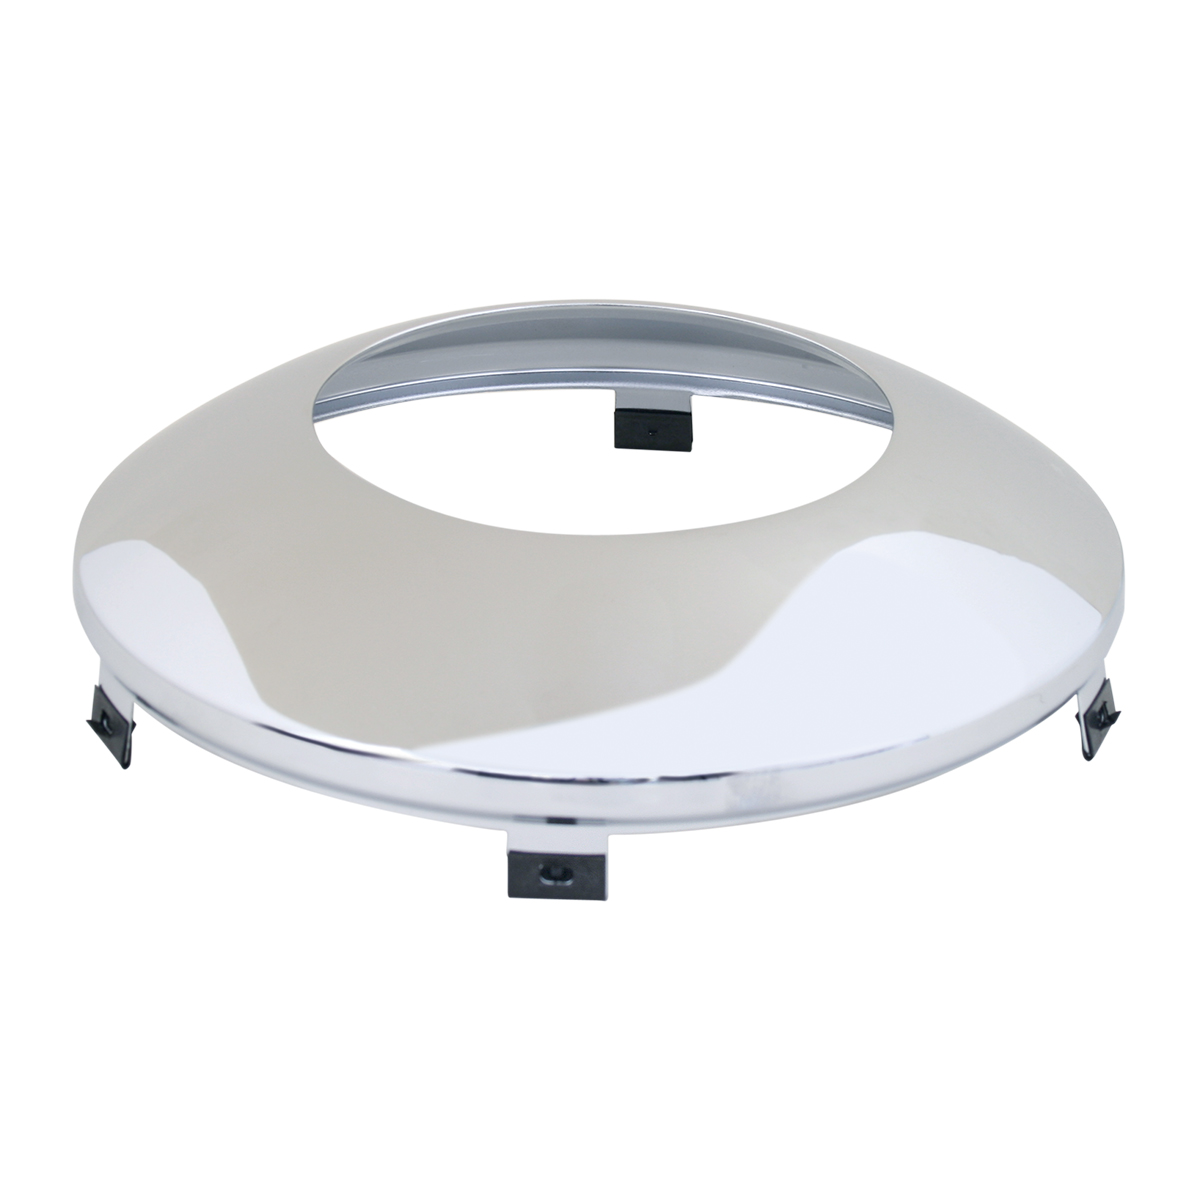 Chrome Plated Universal Standard Front Hubdometer Cap